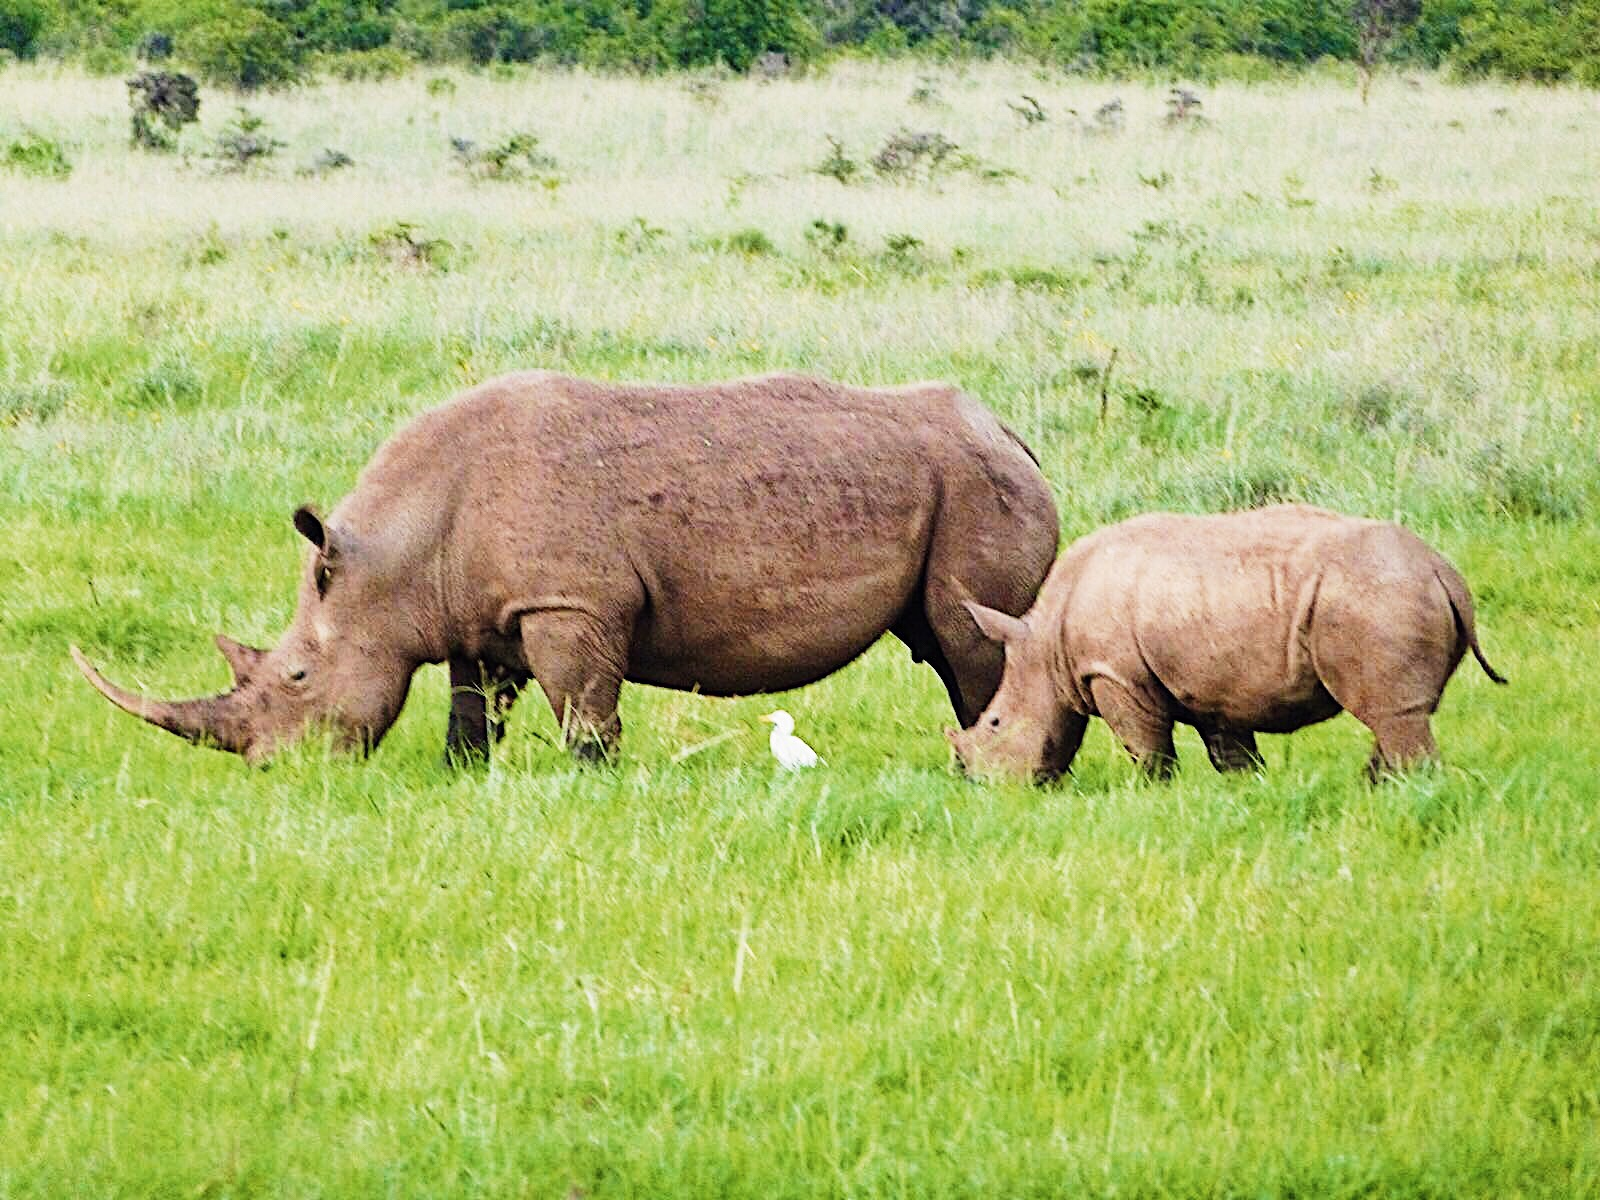 Picture of wildlife rhino in Nairobi